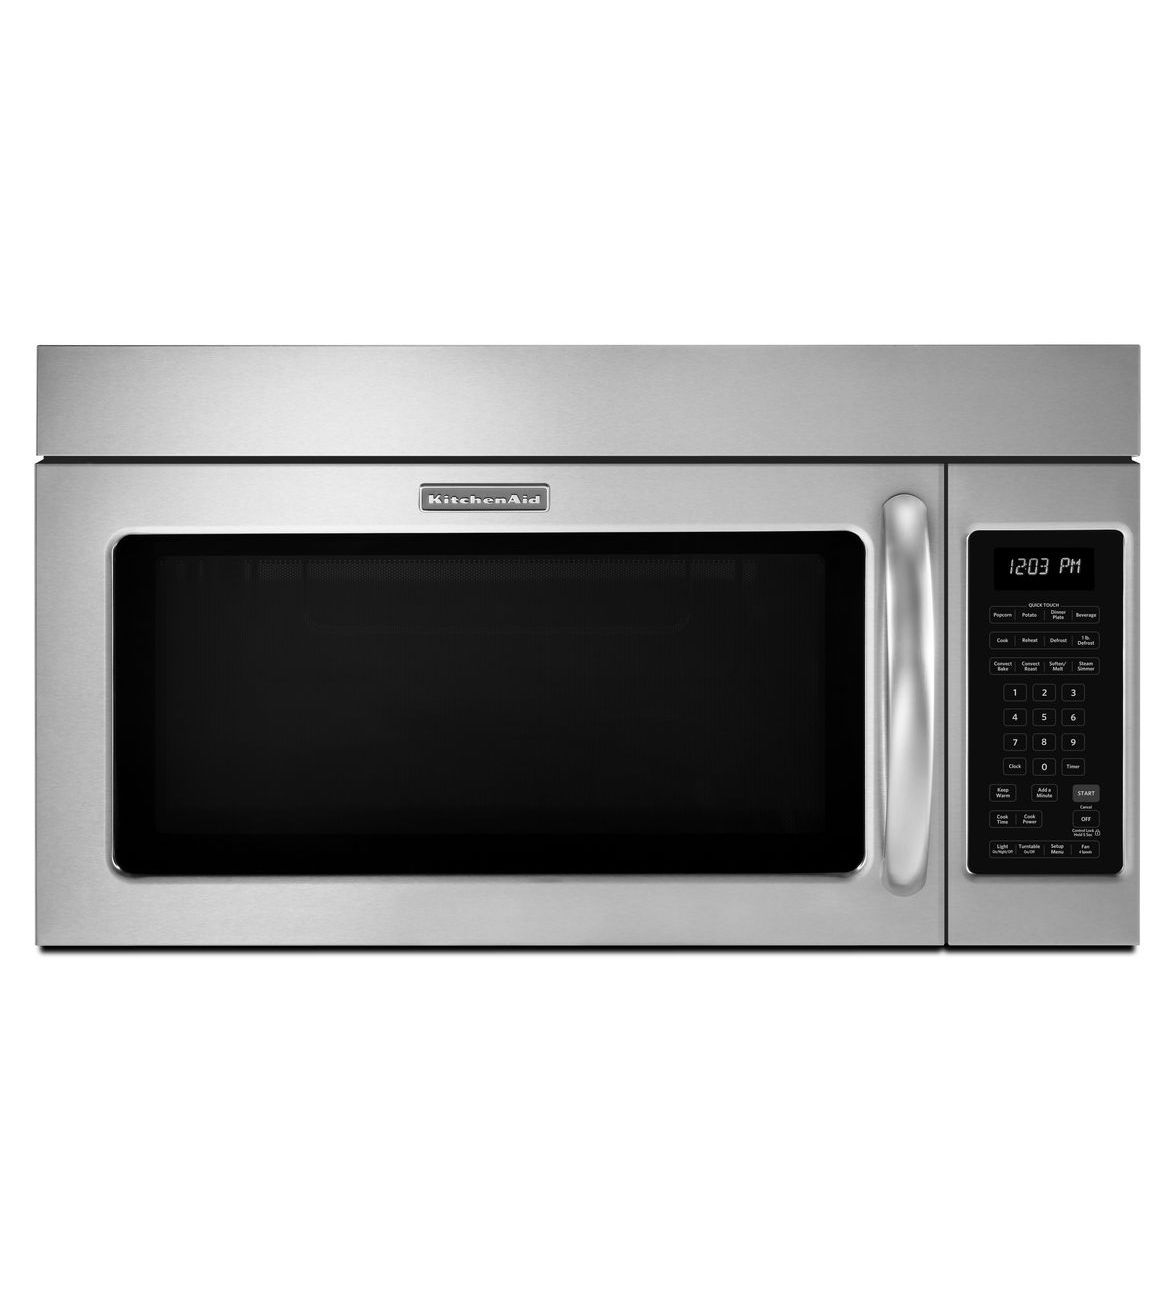 Kitchenaid 174 30 1000 Watt Microwave Hood Combination